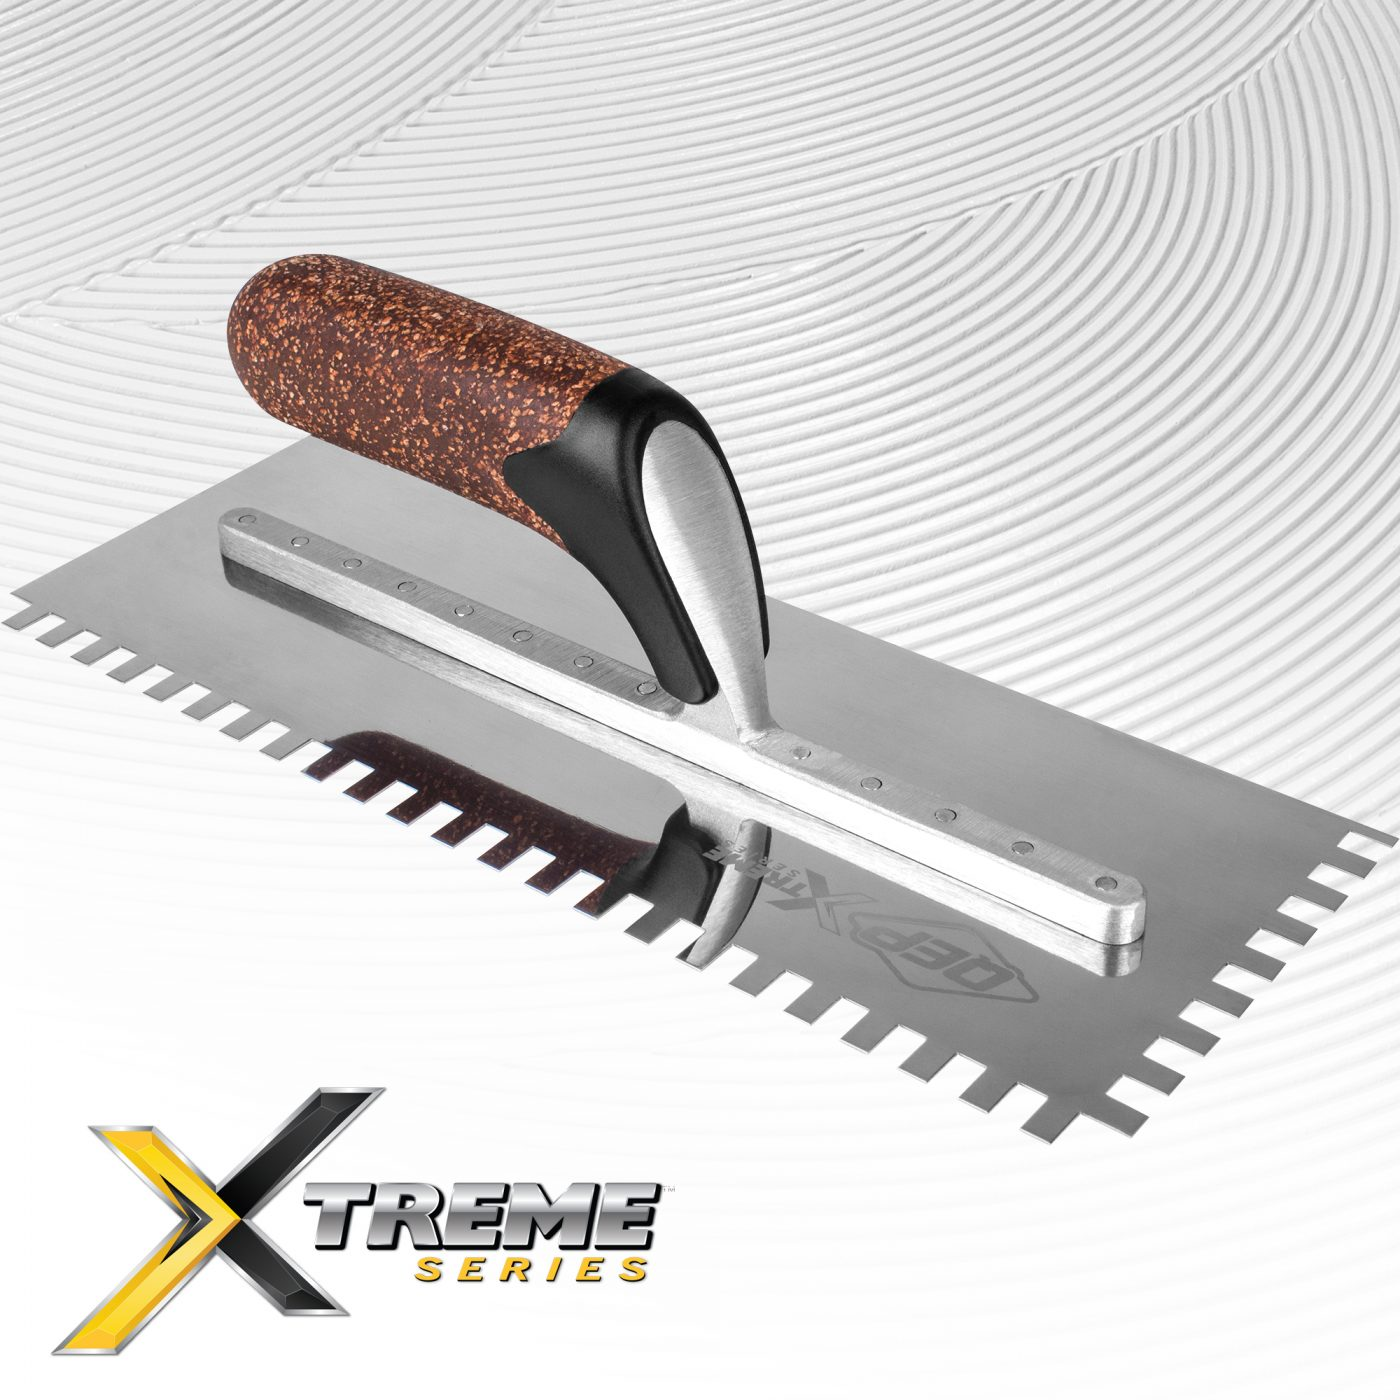 X-TREME Cork Handle Notched Trowels